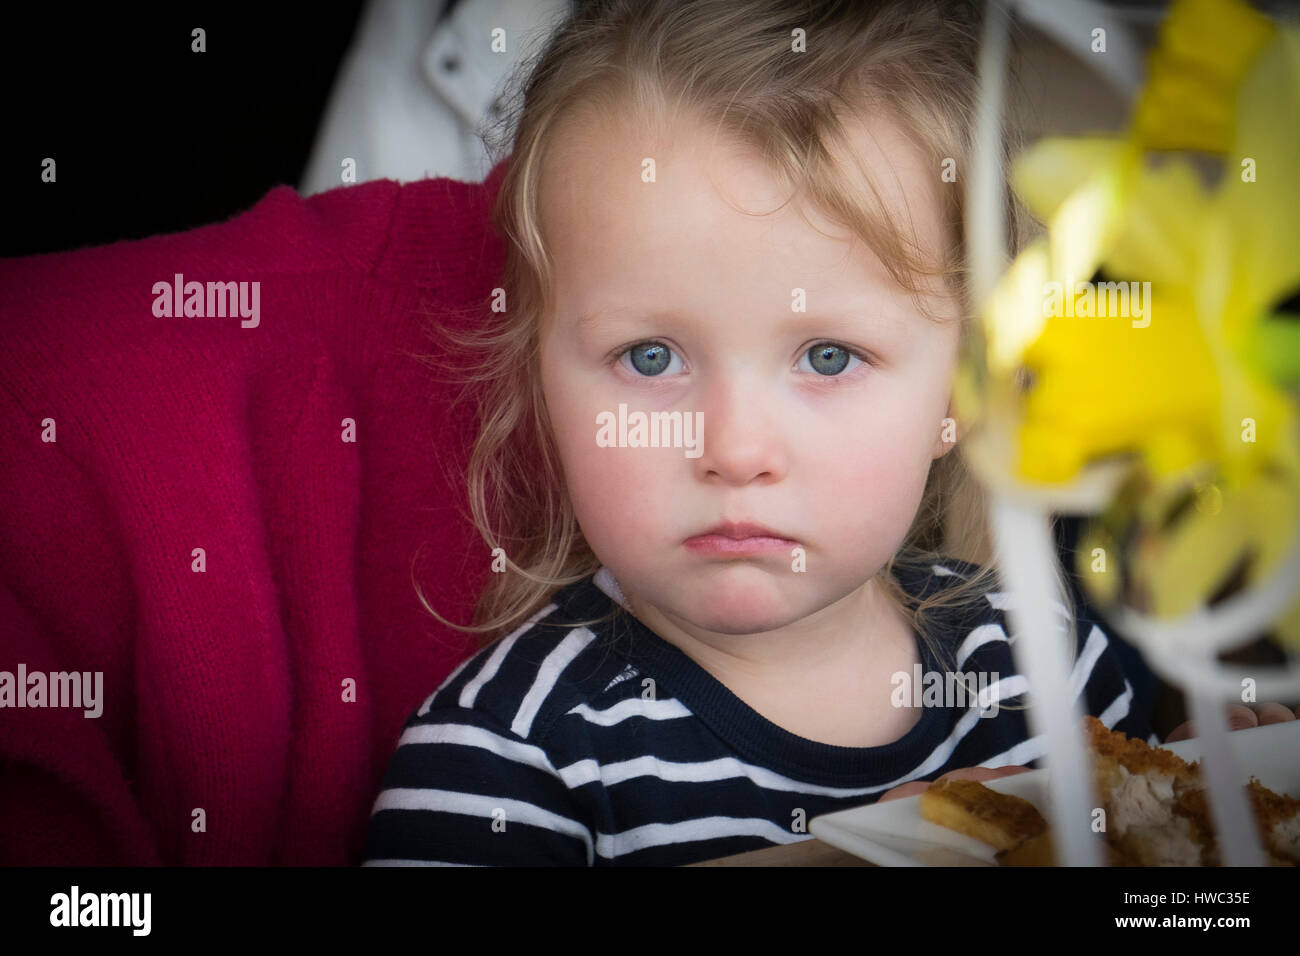 Child Girl Upset Tearful Pout Pouting Direct Gaze - Stock Image